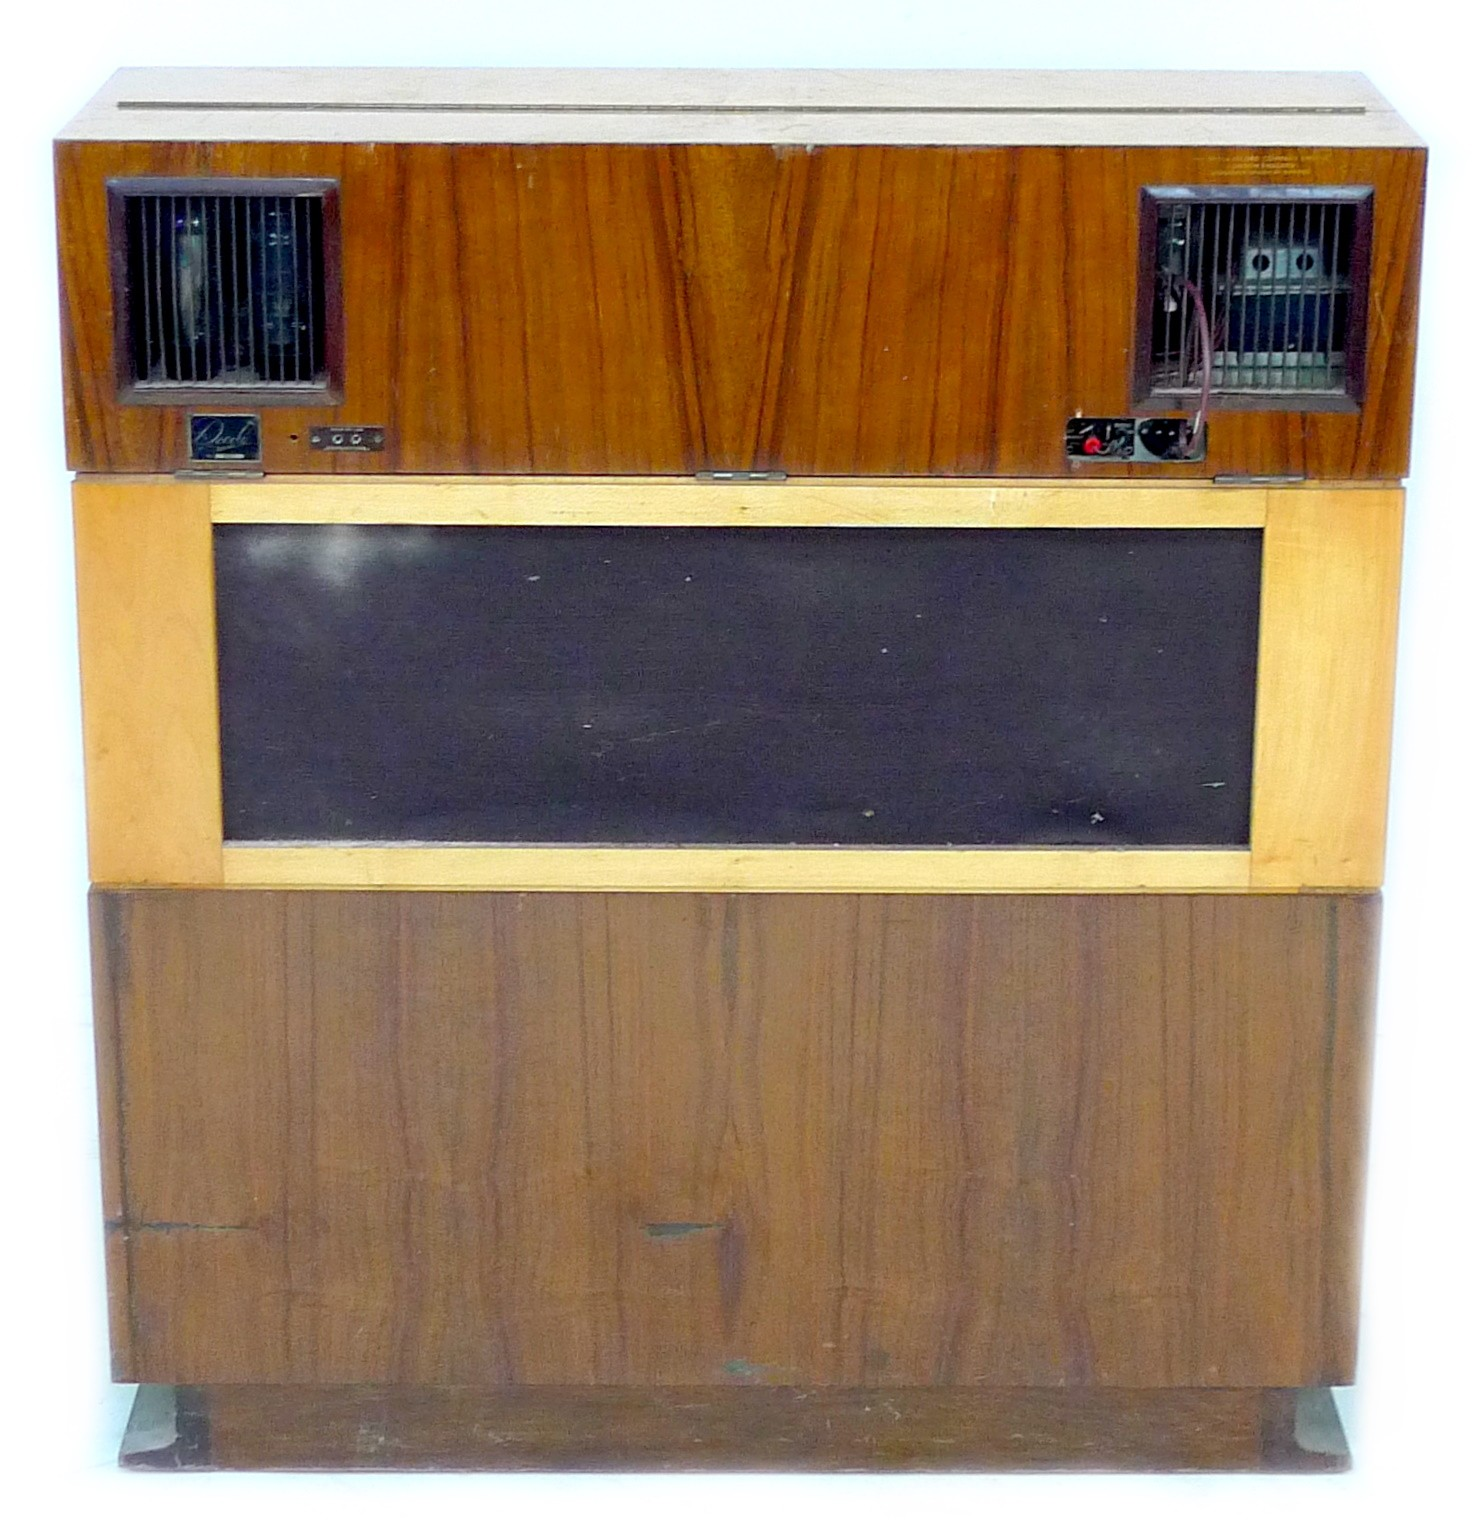 A vintage 'Decola' radiogram, by The Decca Record Company Limited, Rd. Desn. 844055, 'Decola' No. - Image 6 of 9